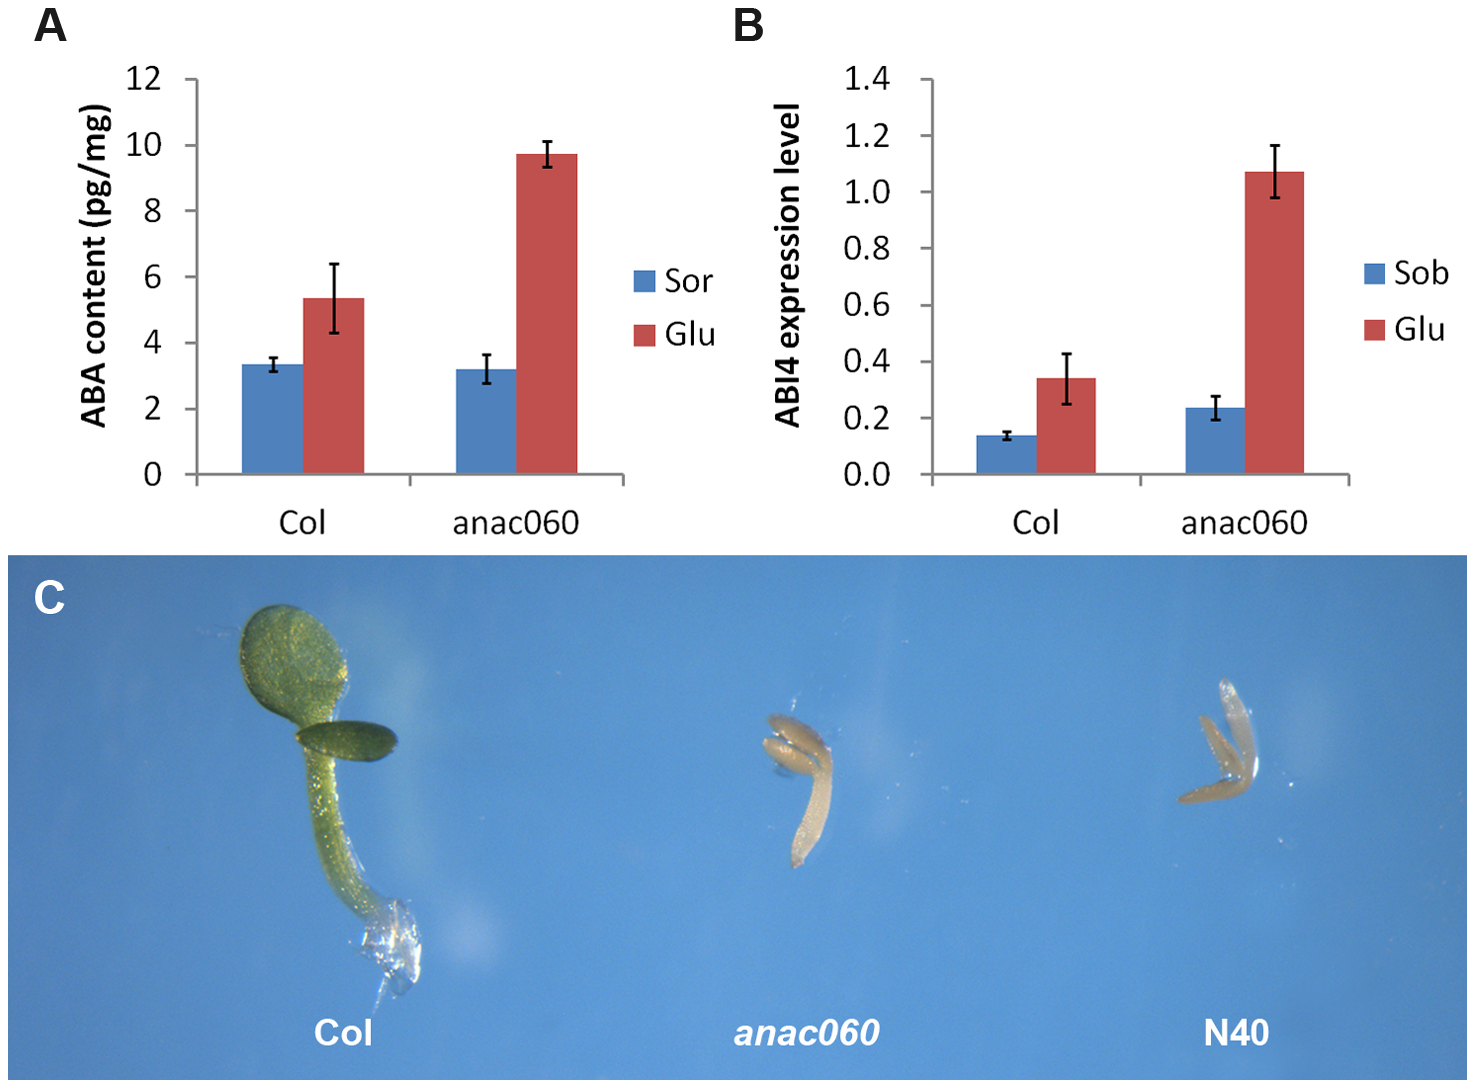 <i>ANAC060</i> attenuates Glc-induced ABA accumulation and ABA sensitivity.